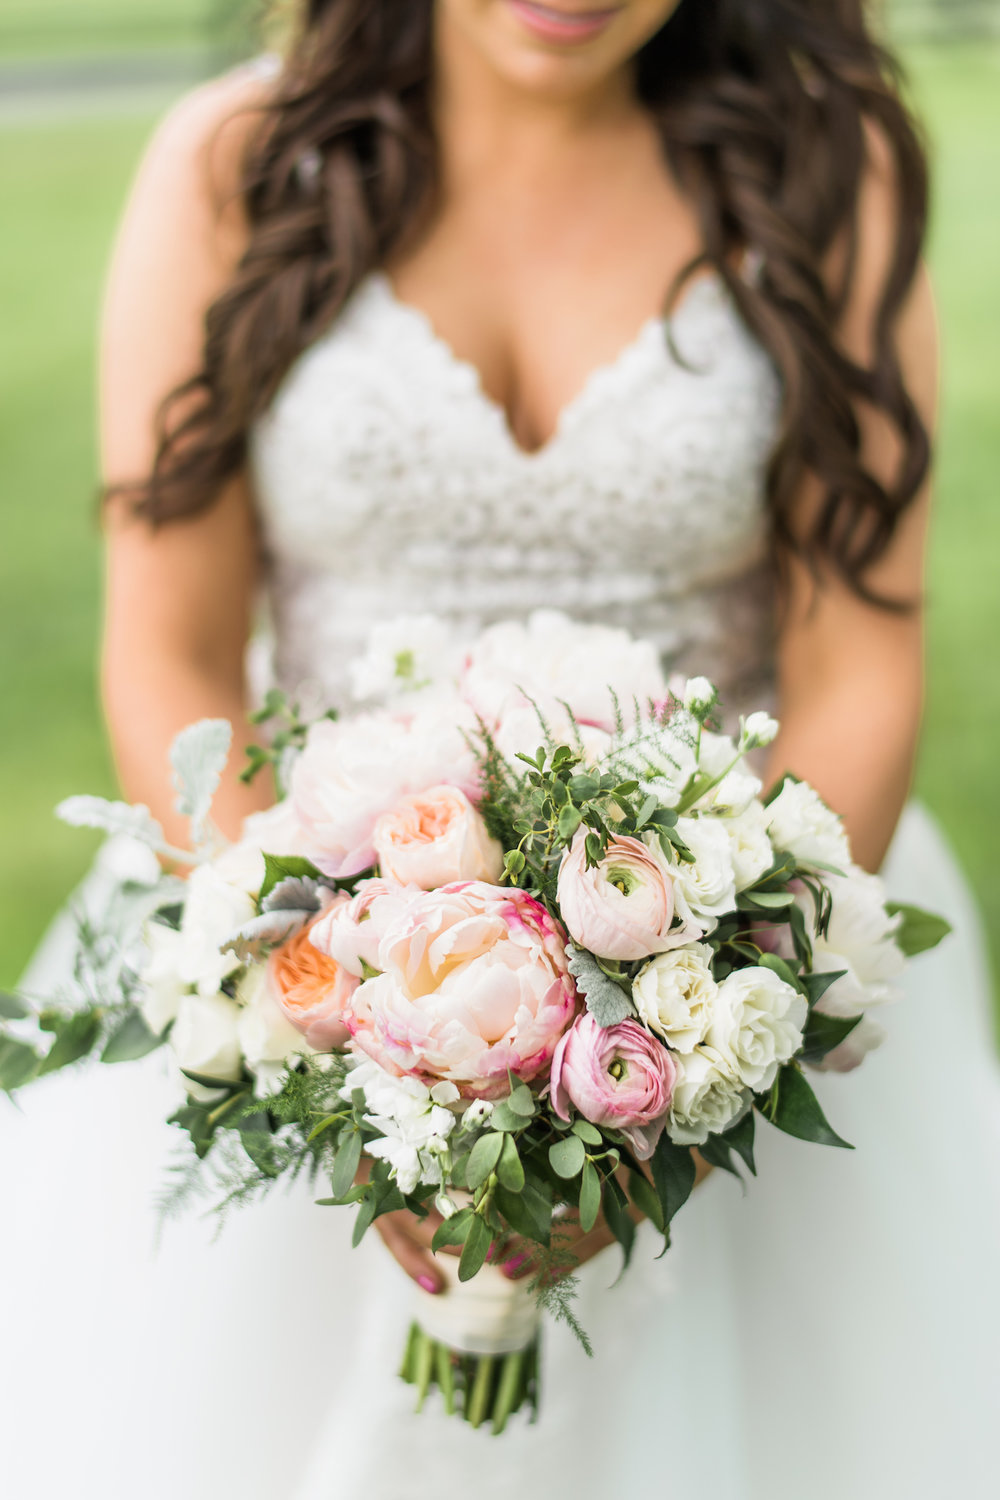 Messick-Morgan-bridal-bouquet-pink-peony-ranunuculus-jmorrisflowers.jpg